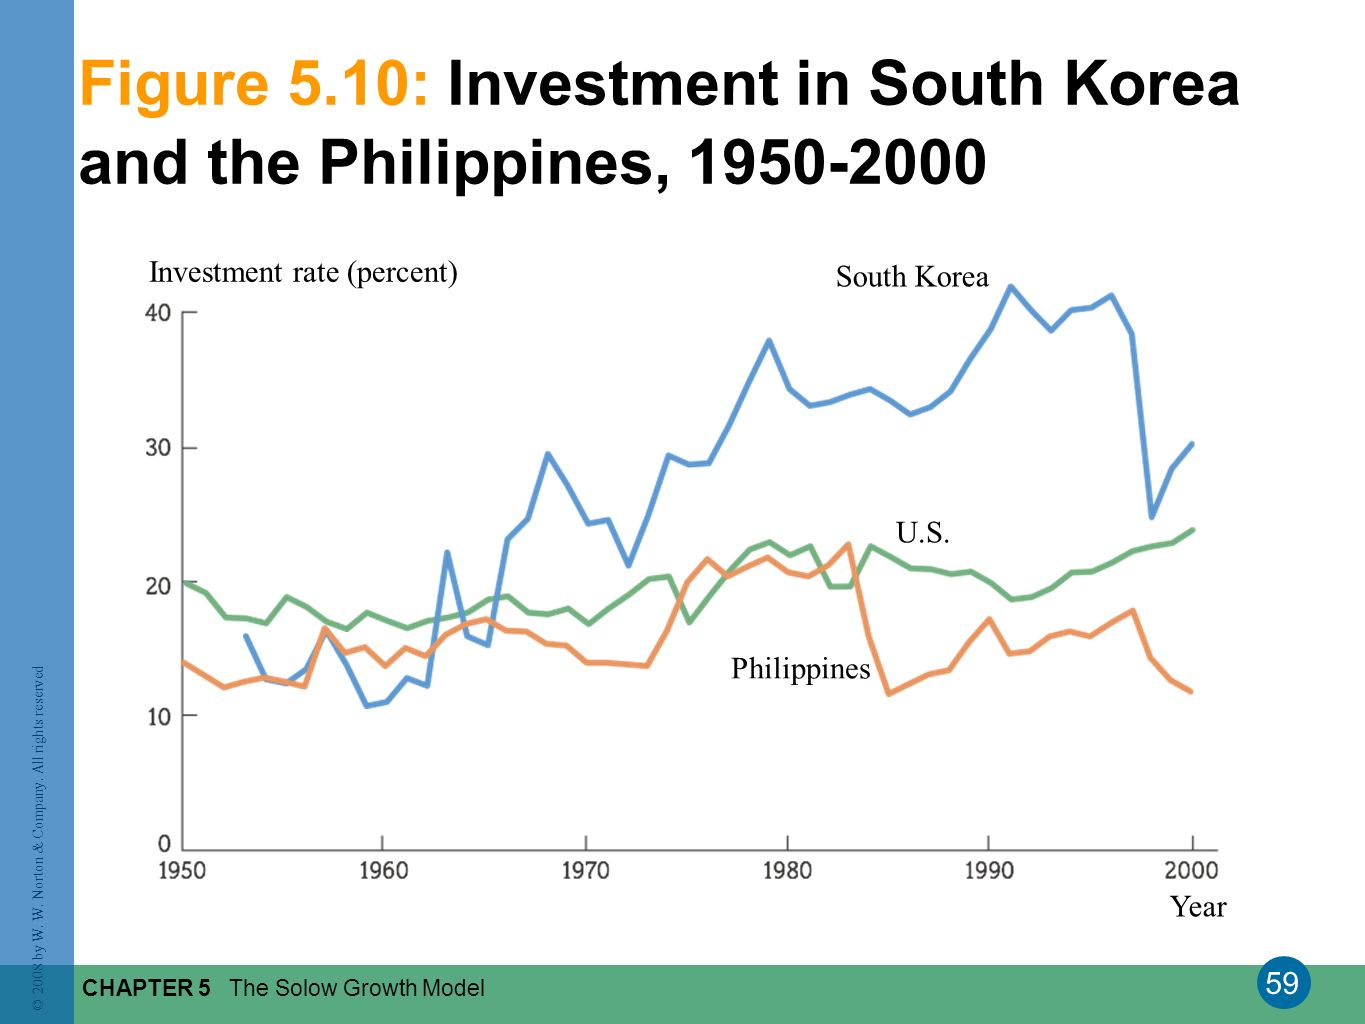 Figure 5.10: Investment in South Korea and the Philippines, 1950-2000